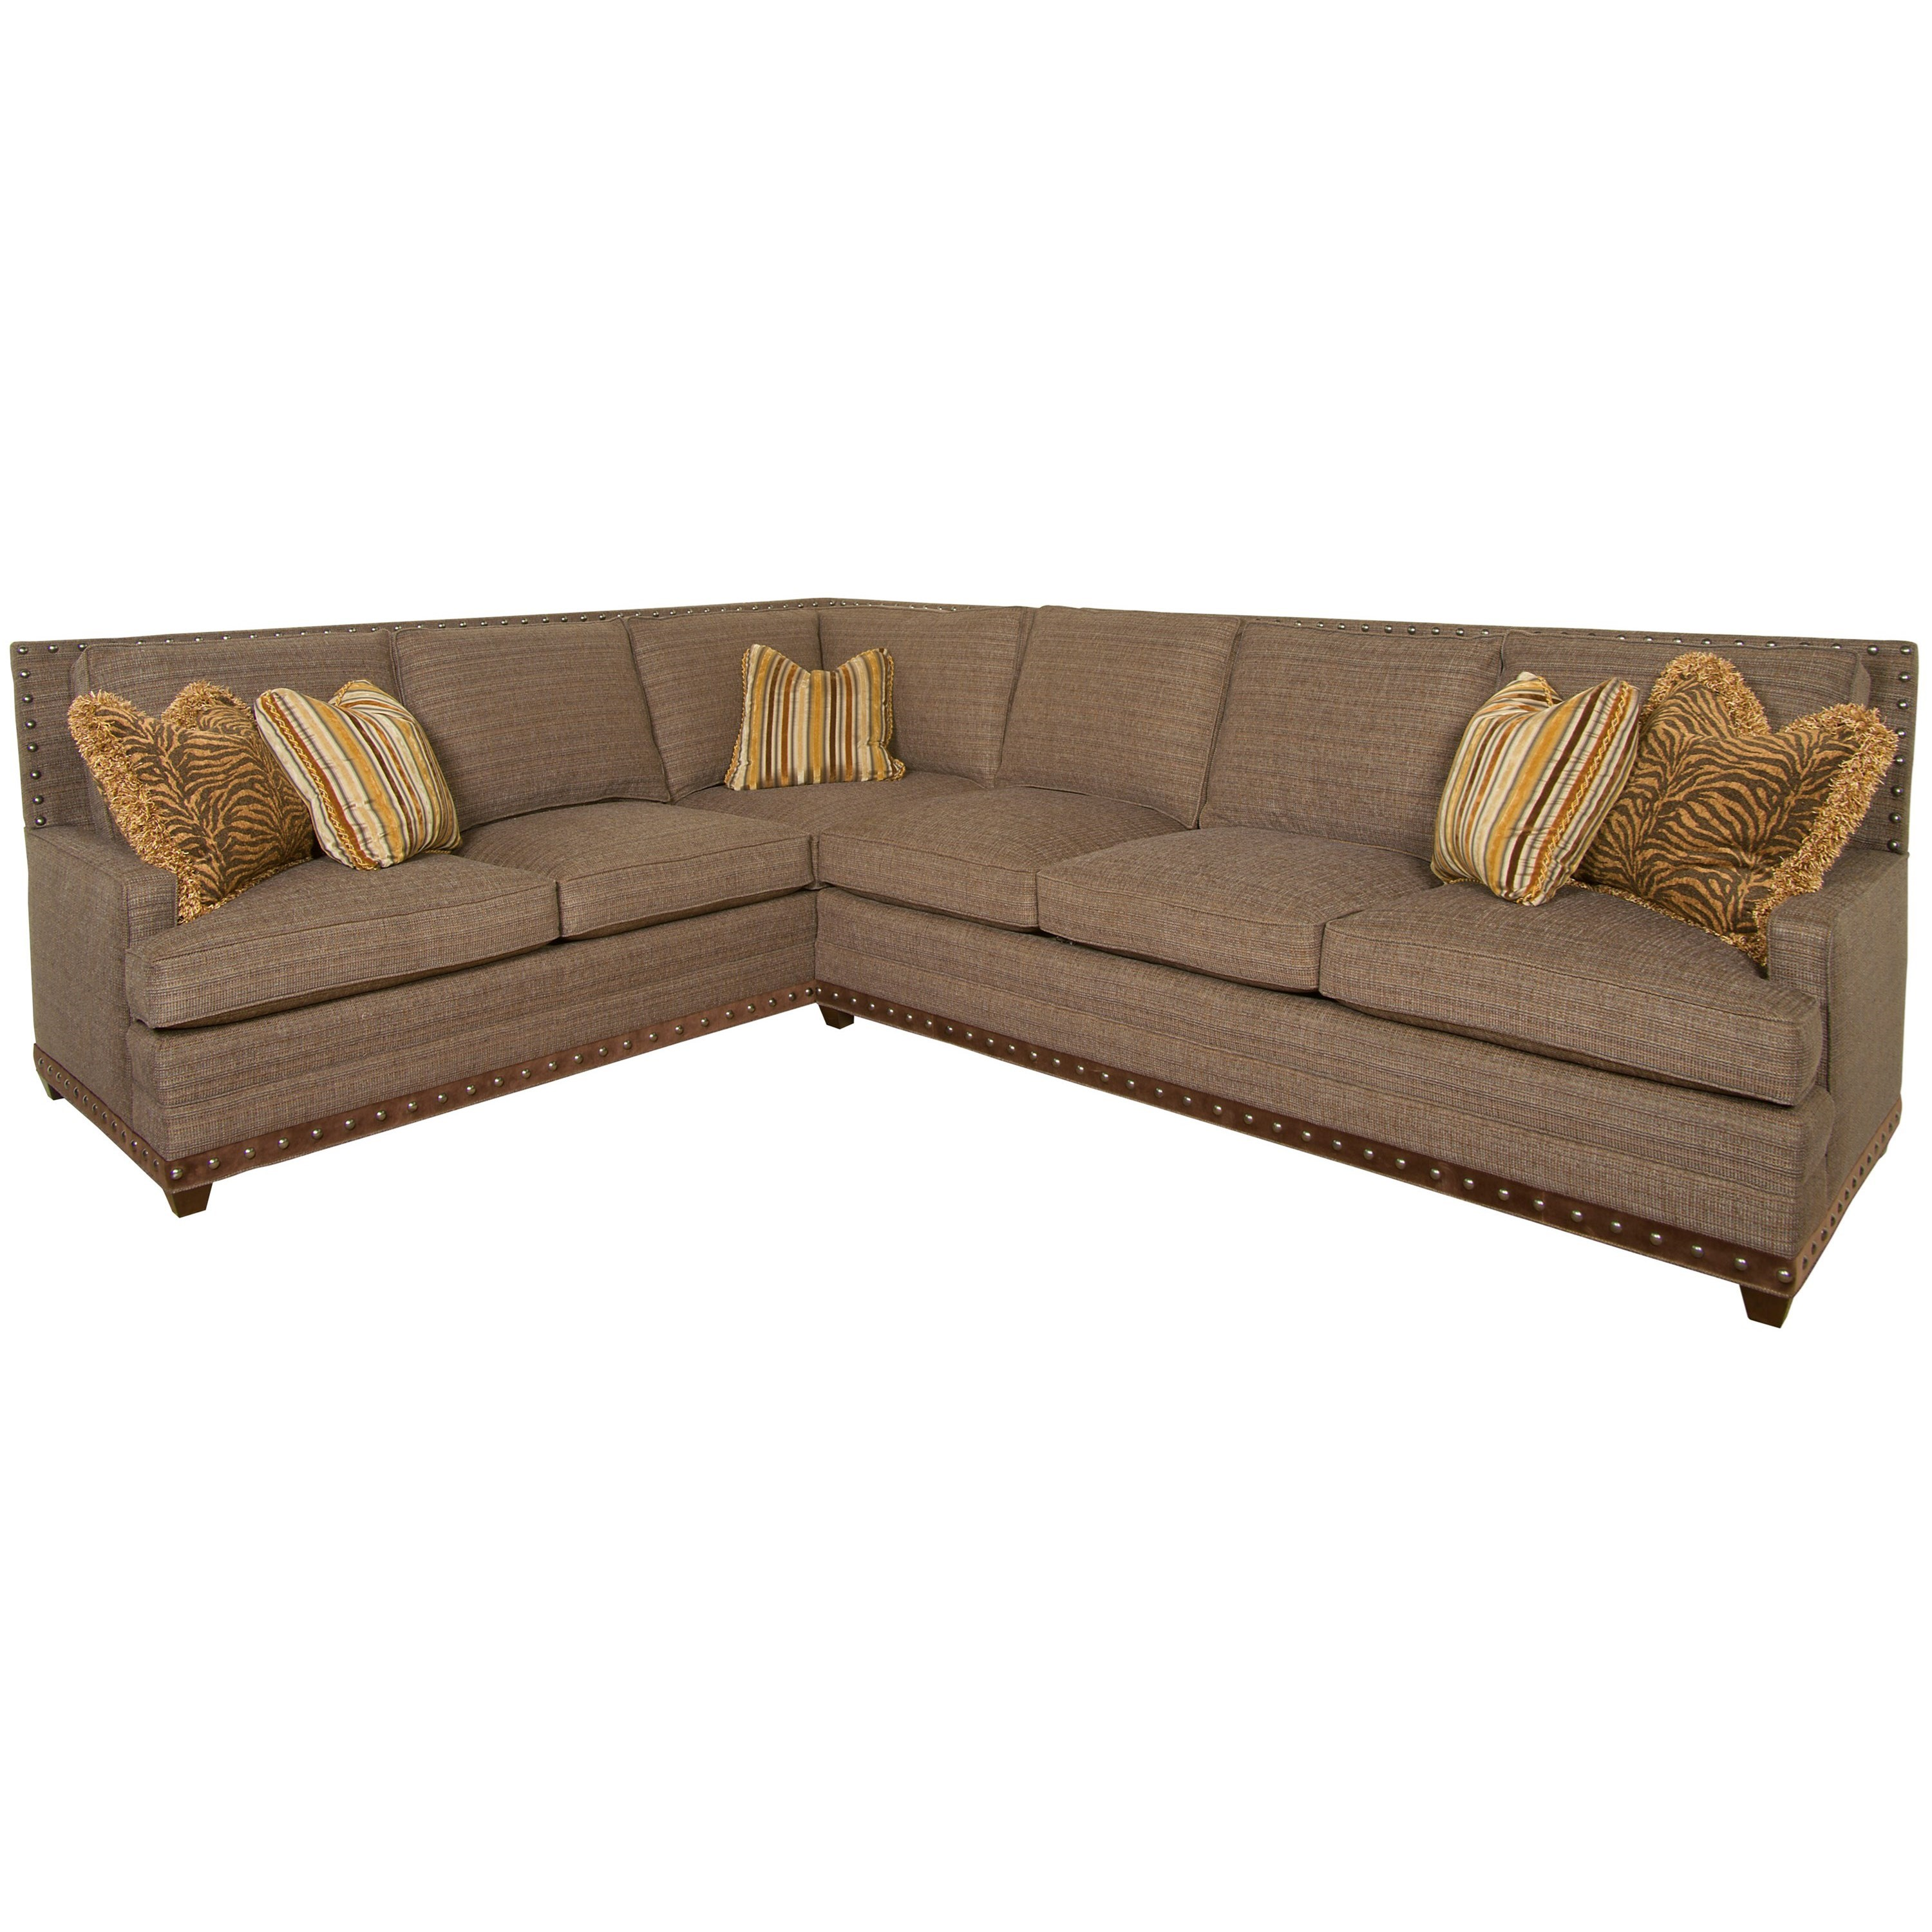 American Bungalow Riverside Sectional Sofa by Vanguard Furniture at Sprintz Furniture